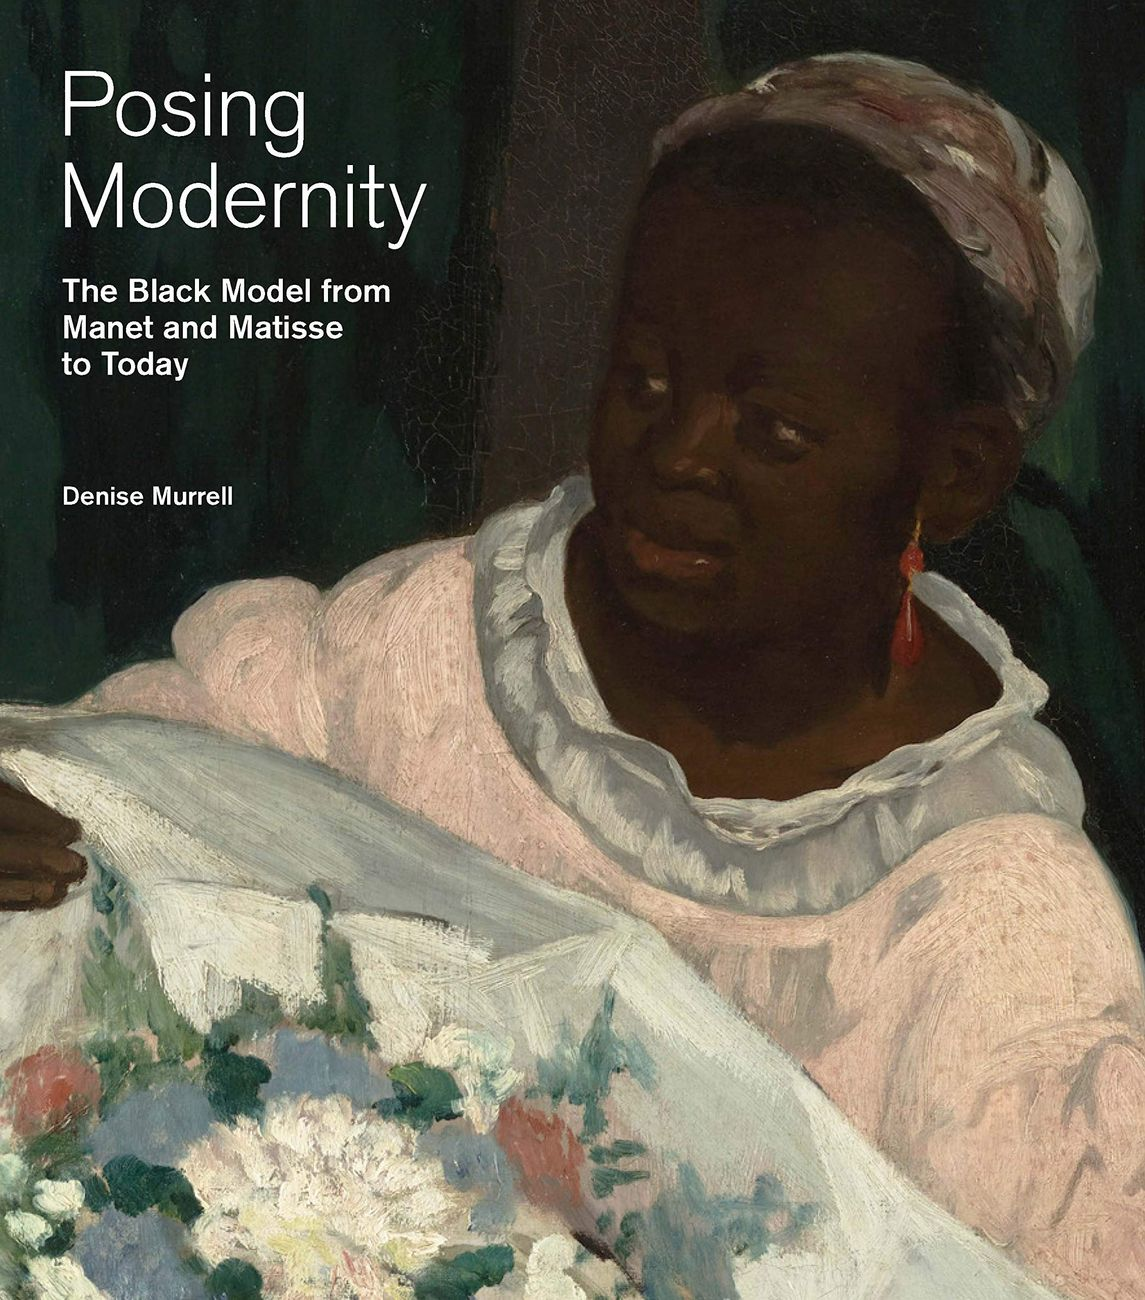 Denise Murrell, Posing Modernity. The Black Model from Manet and Matisse to Today, 2018